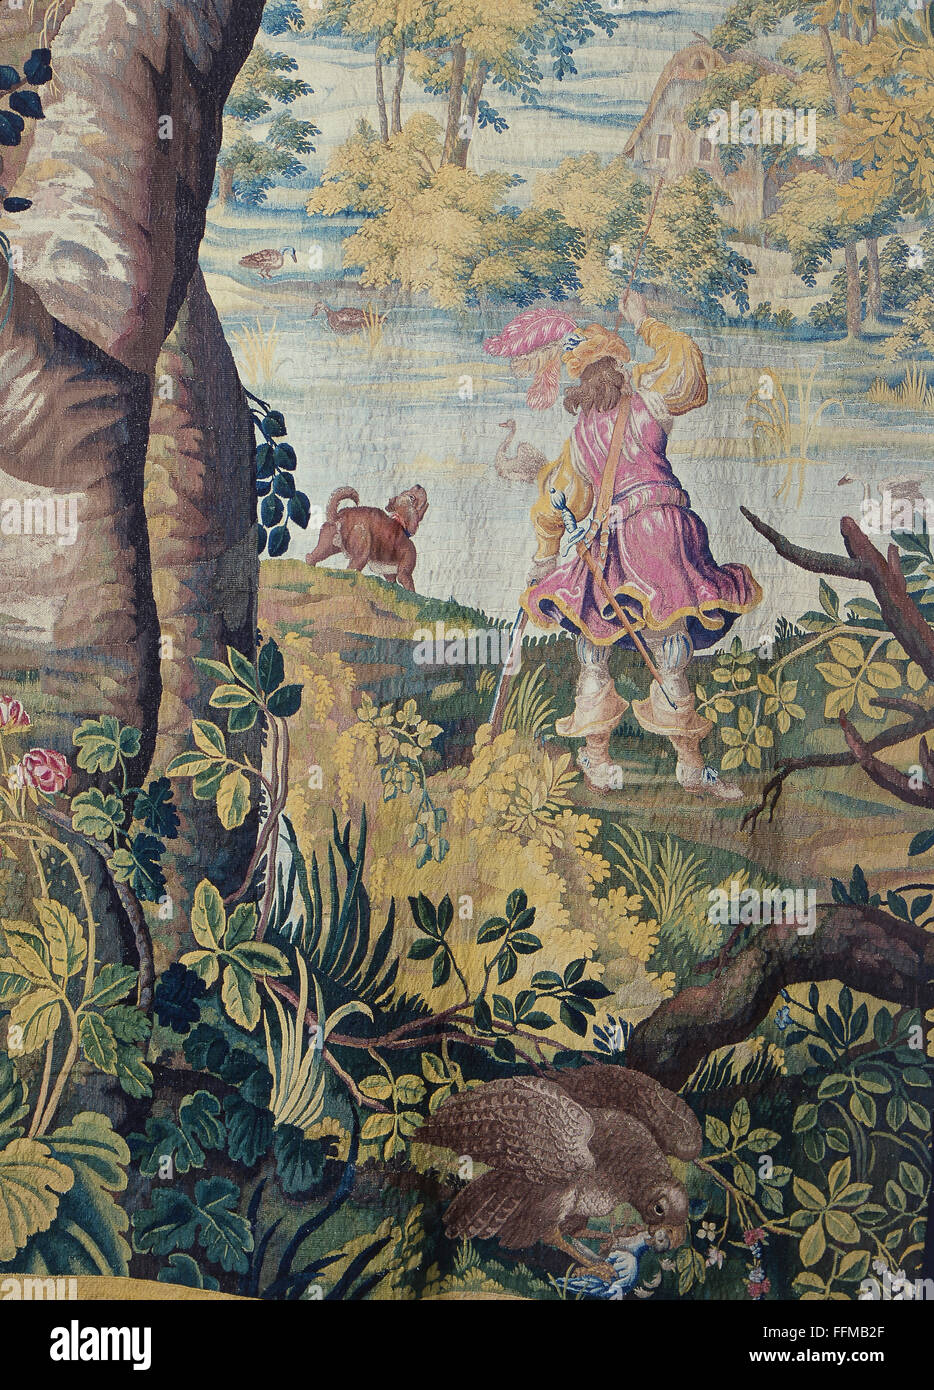 hunt, squire reloading his rifle during duck hunt, tapestry, detail, Netherlands, circa 1640, Additional-Rights - Stock Image